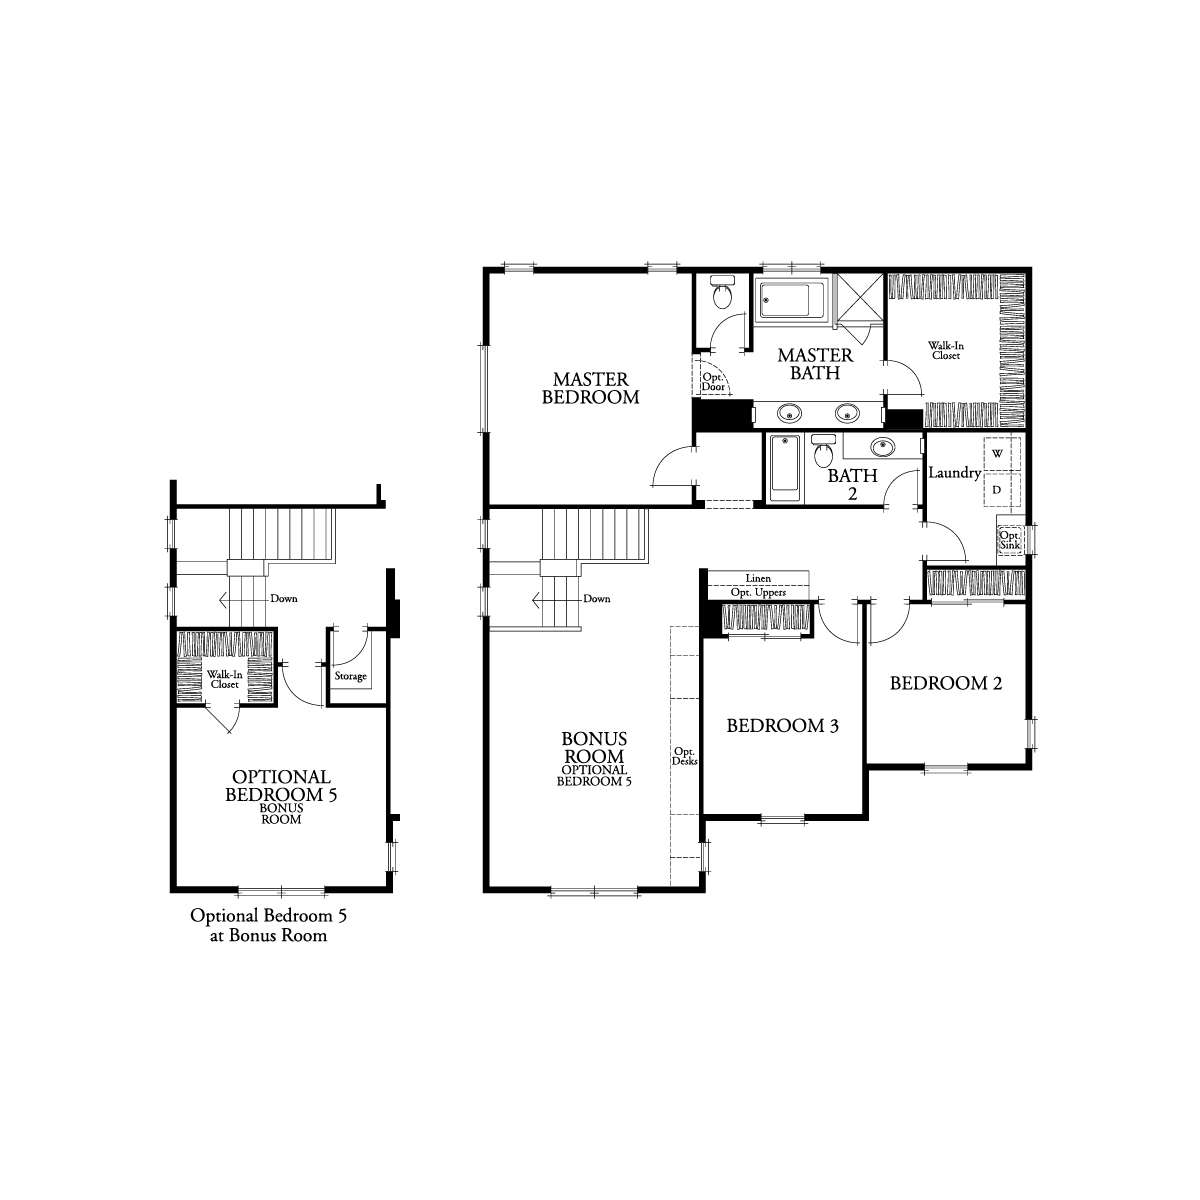 Second floor residence 3 floor plan | Waverly at New Haven in Ontario Ranch, CA | Brookfield Residential